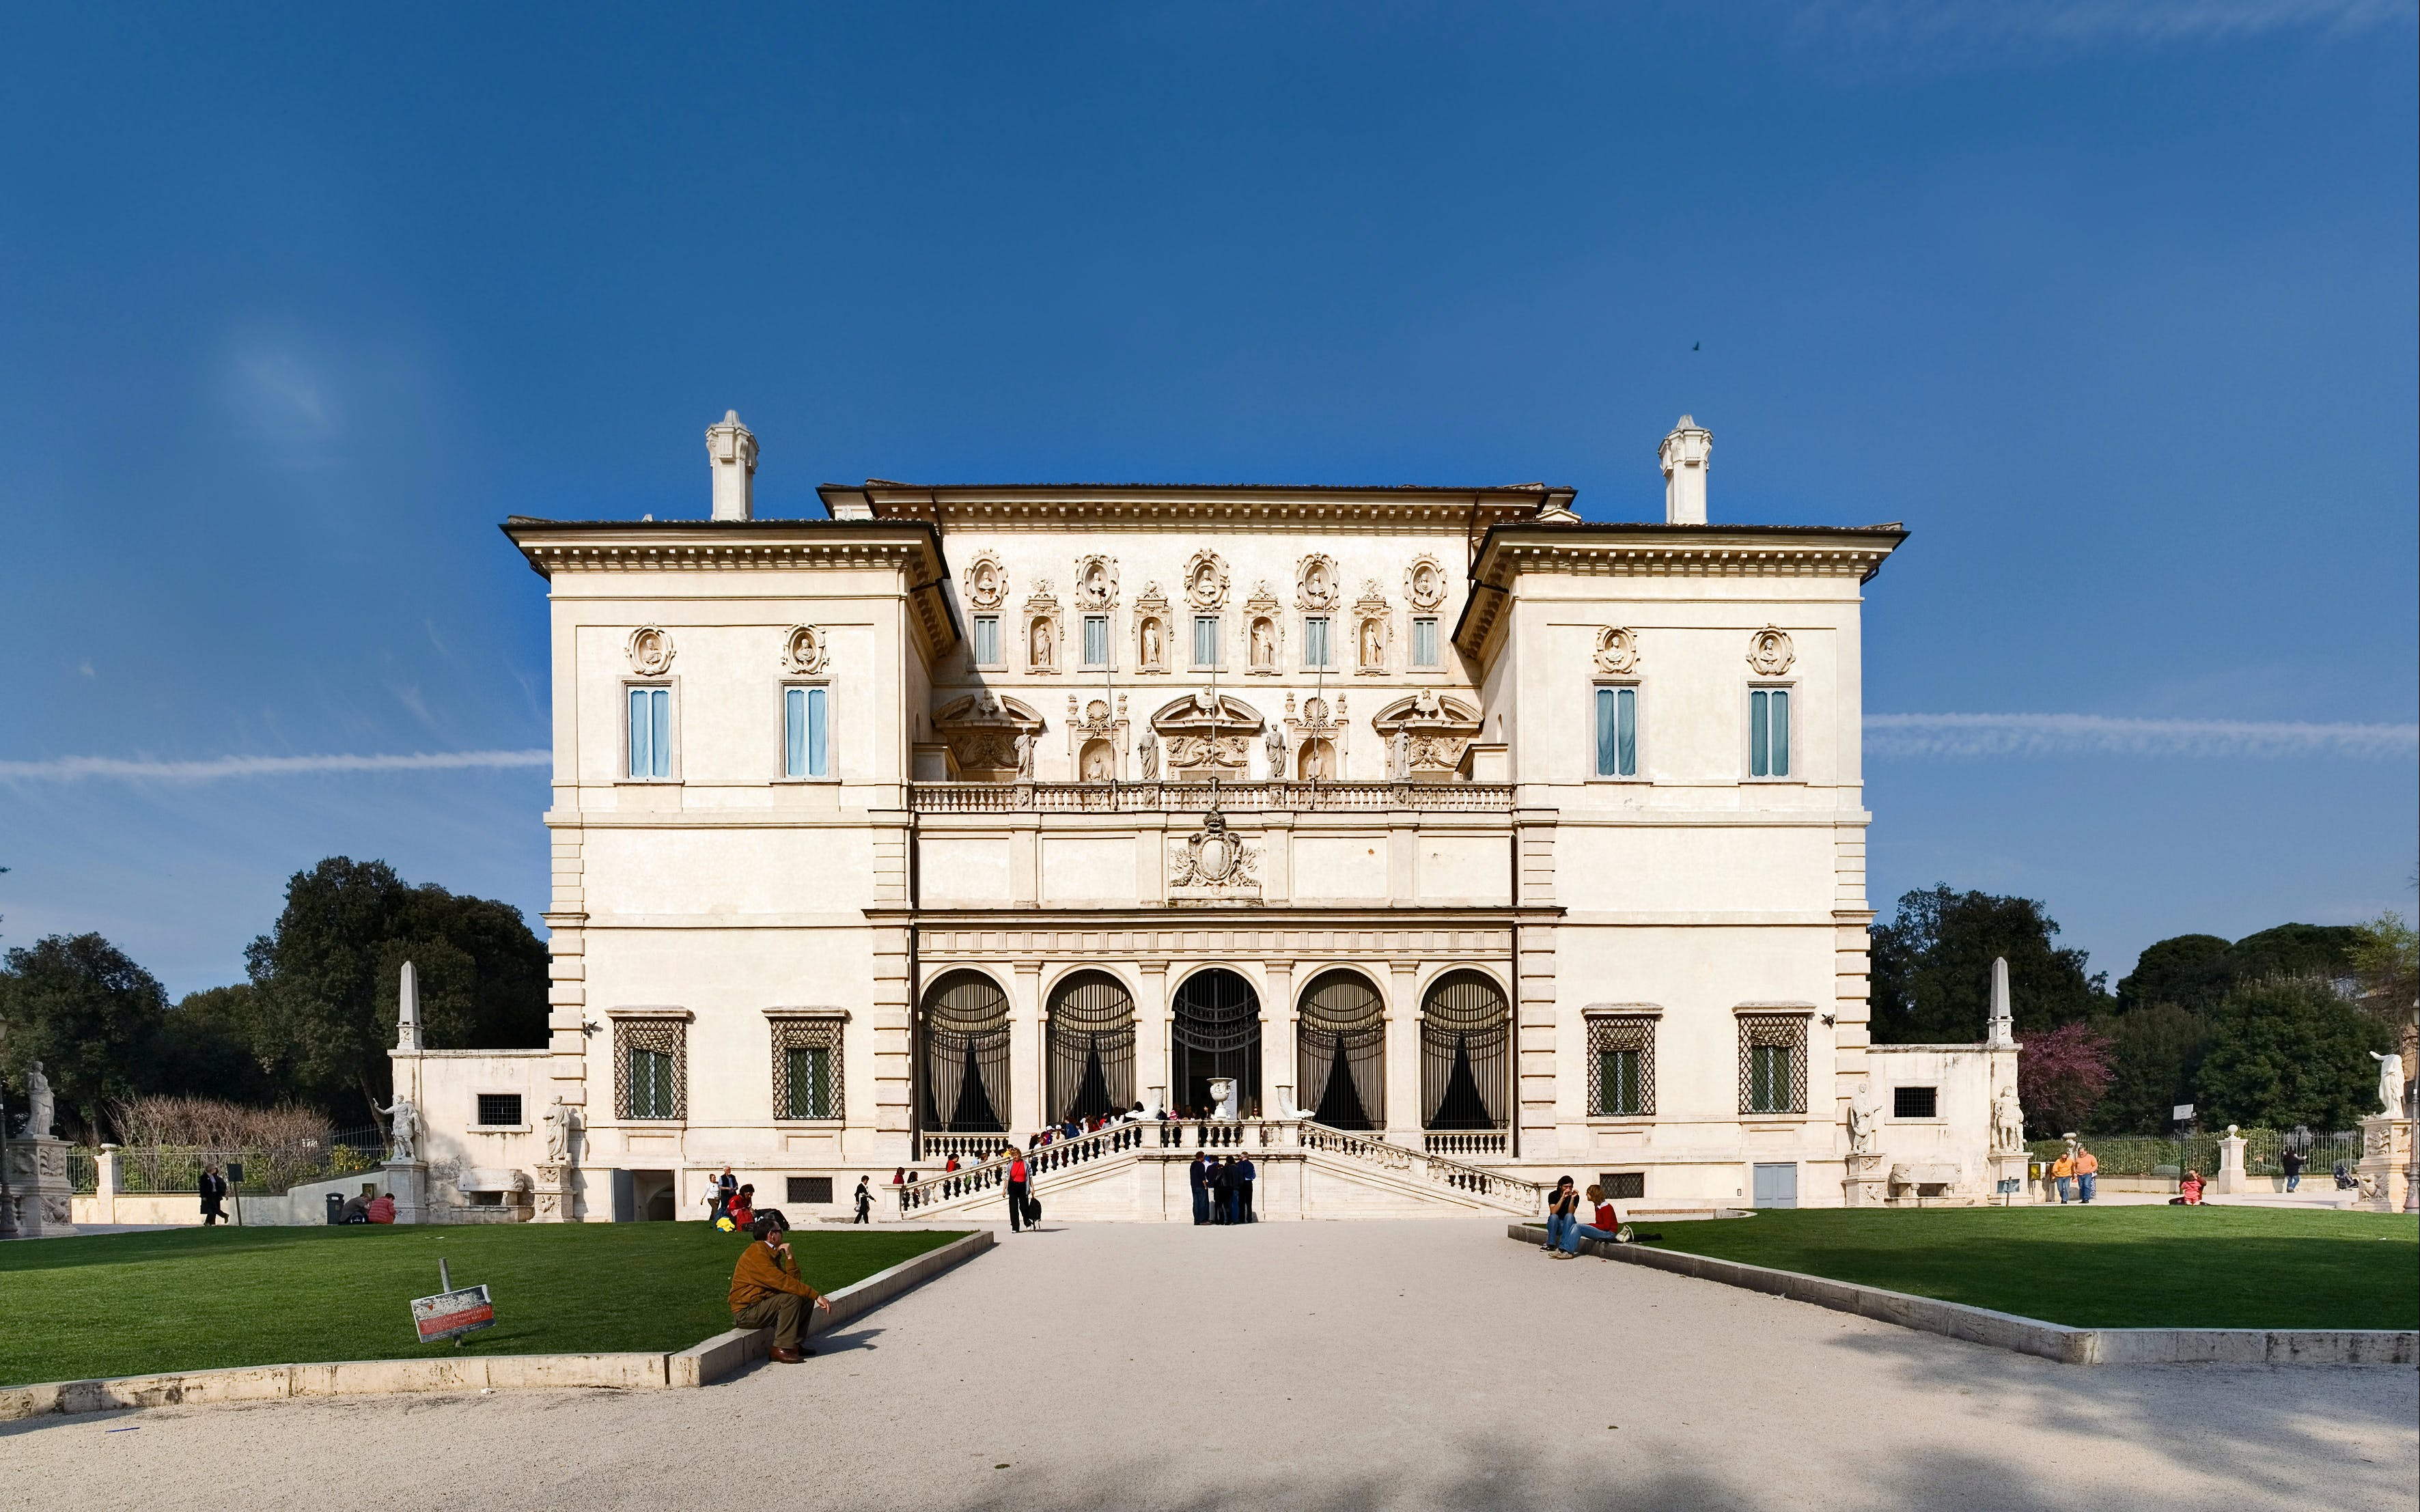 borghese gallery Rome - 1